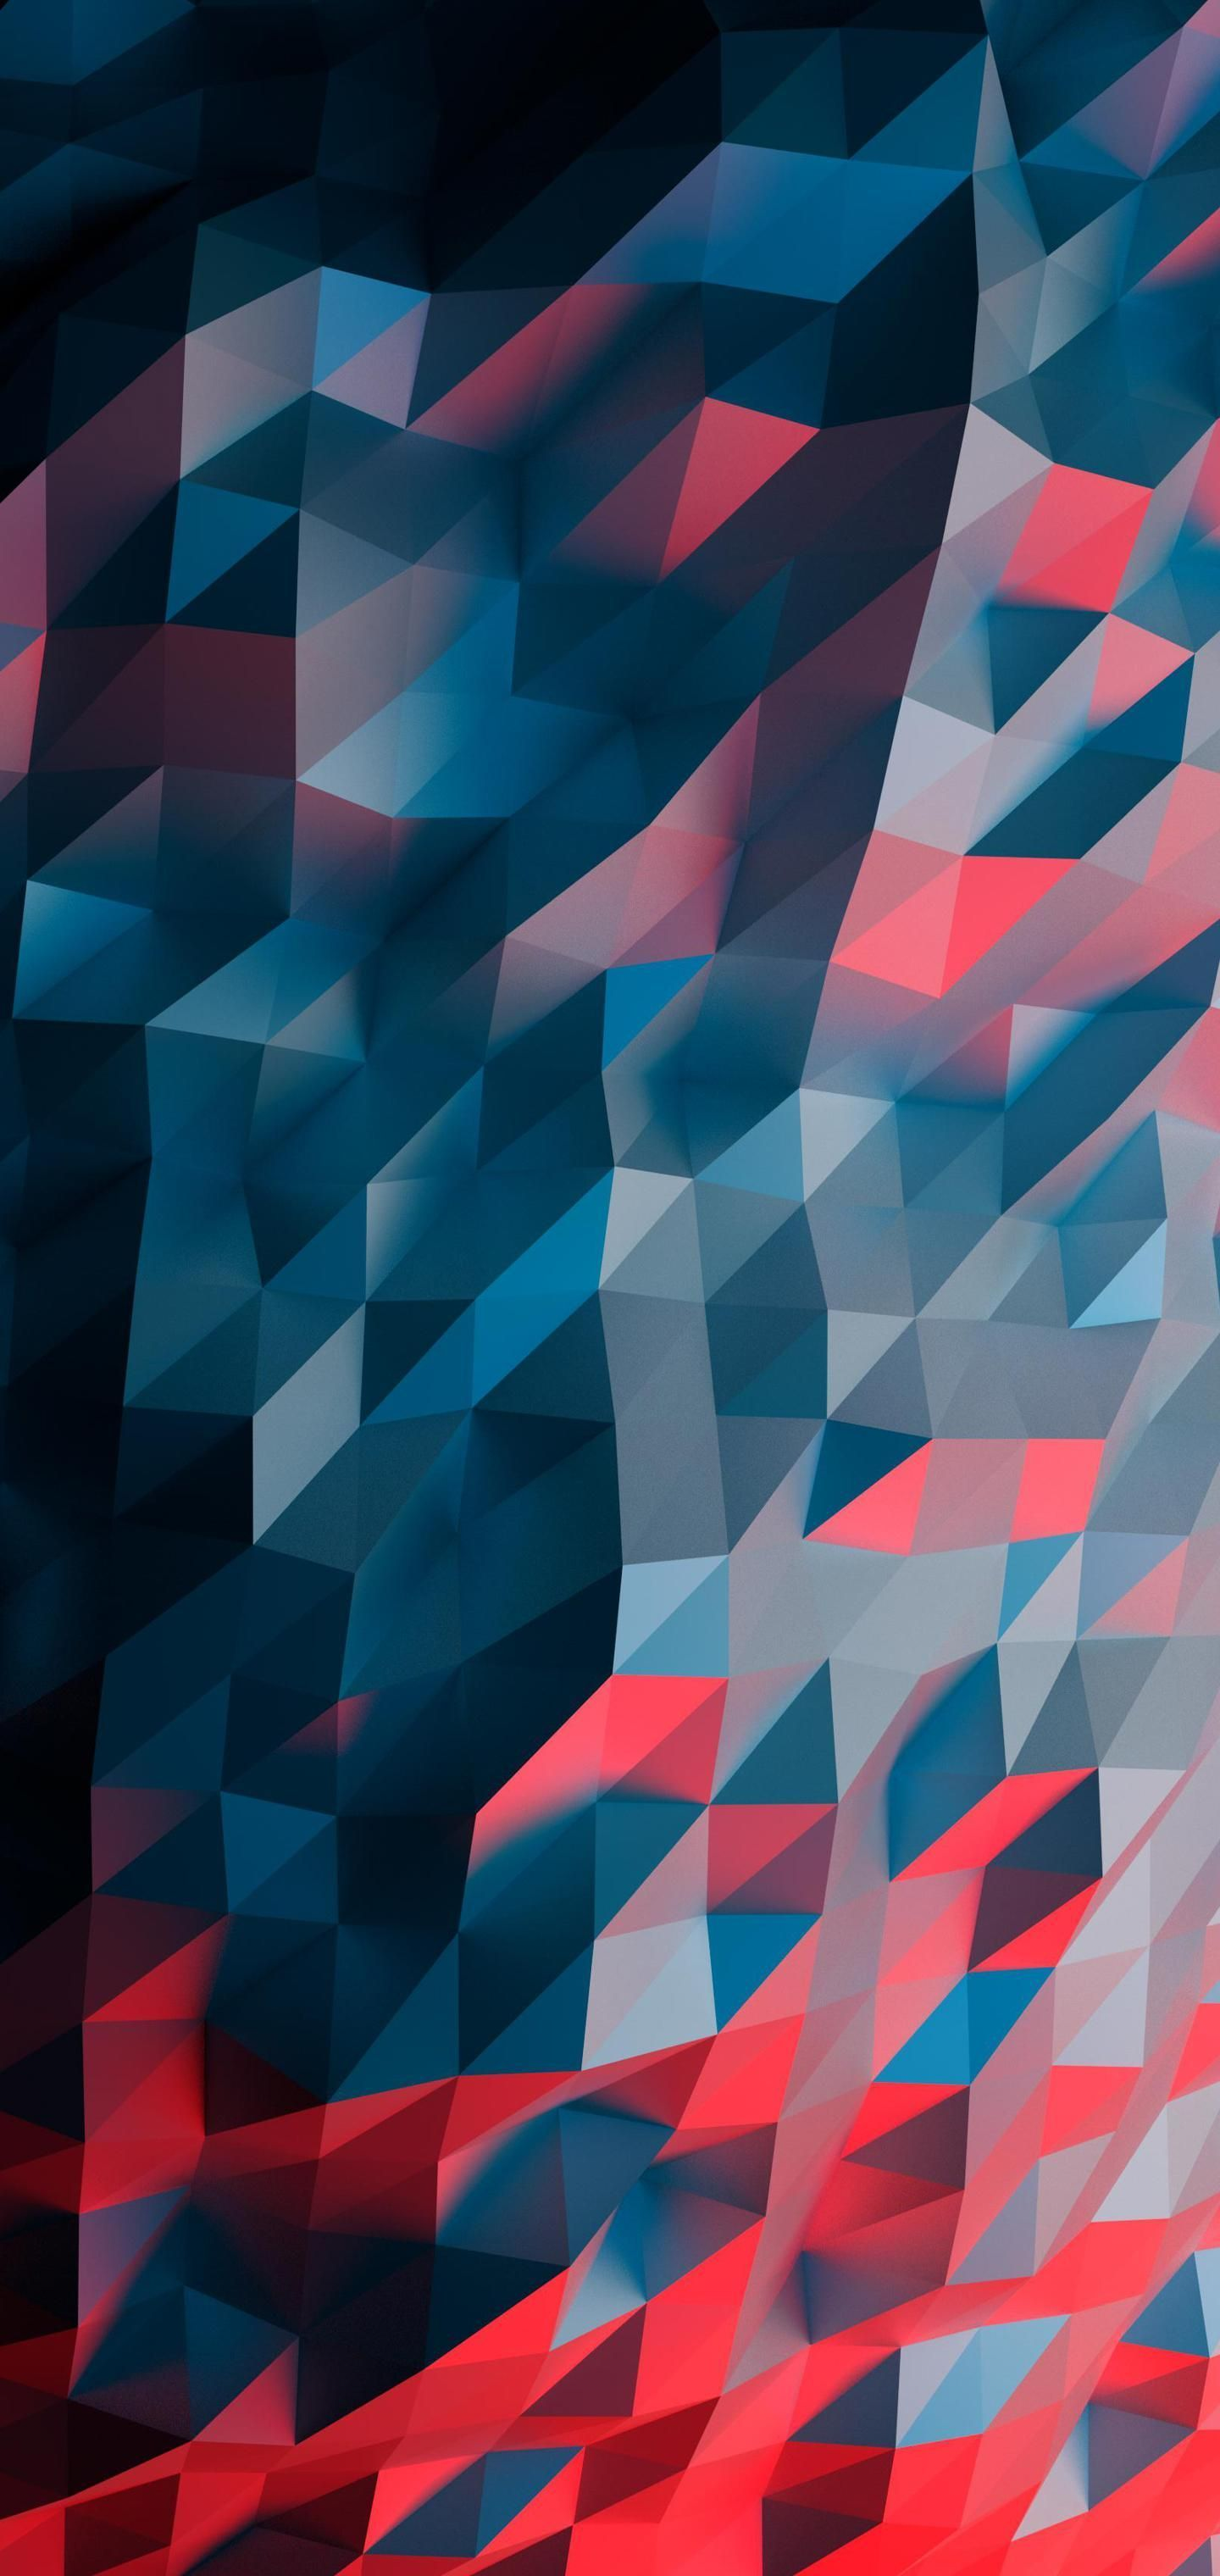 Free Abstract Iphone Wallpaper 4k Background In 2021 Abstract Iphone Wallpaper Abstract Abstract Wallpaper